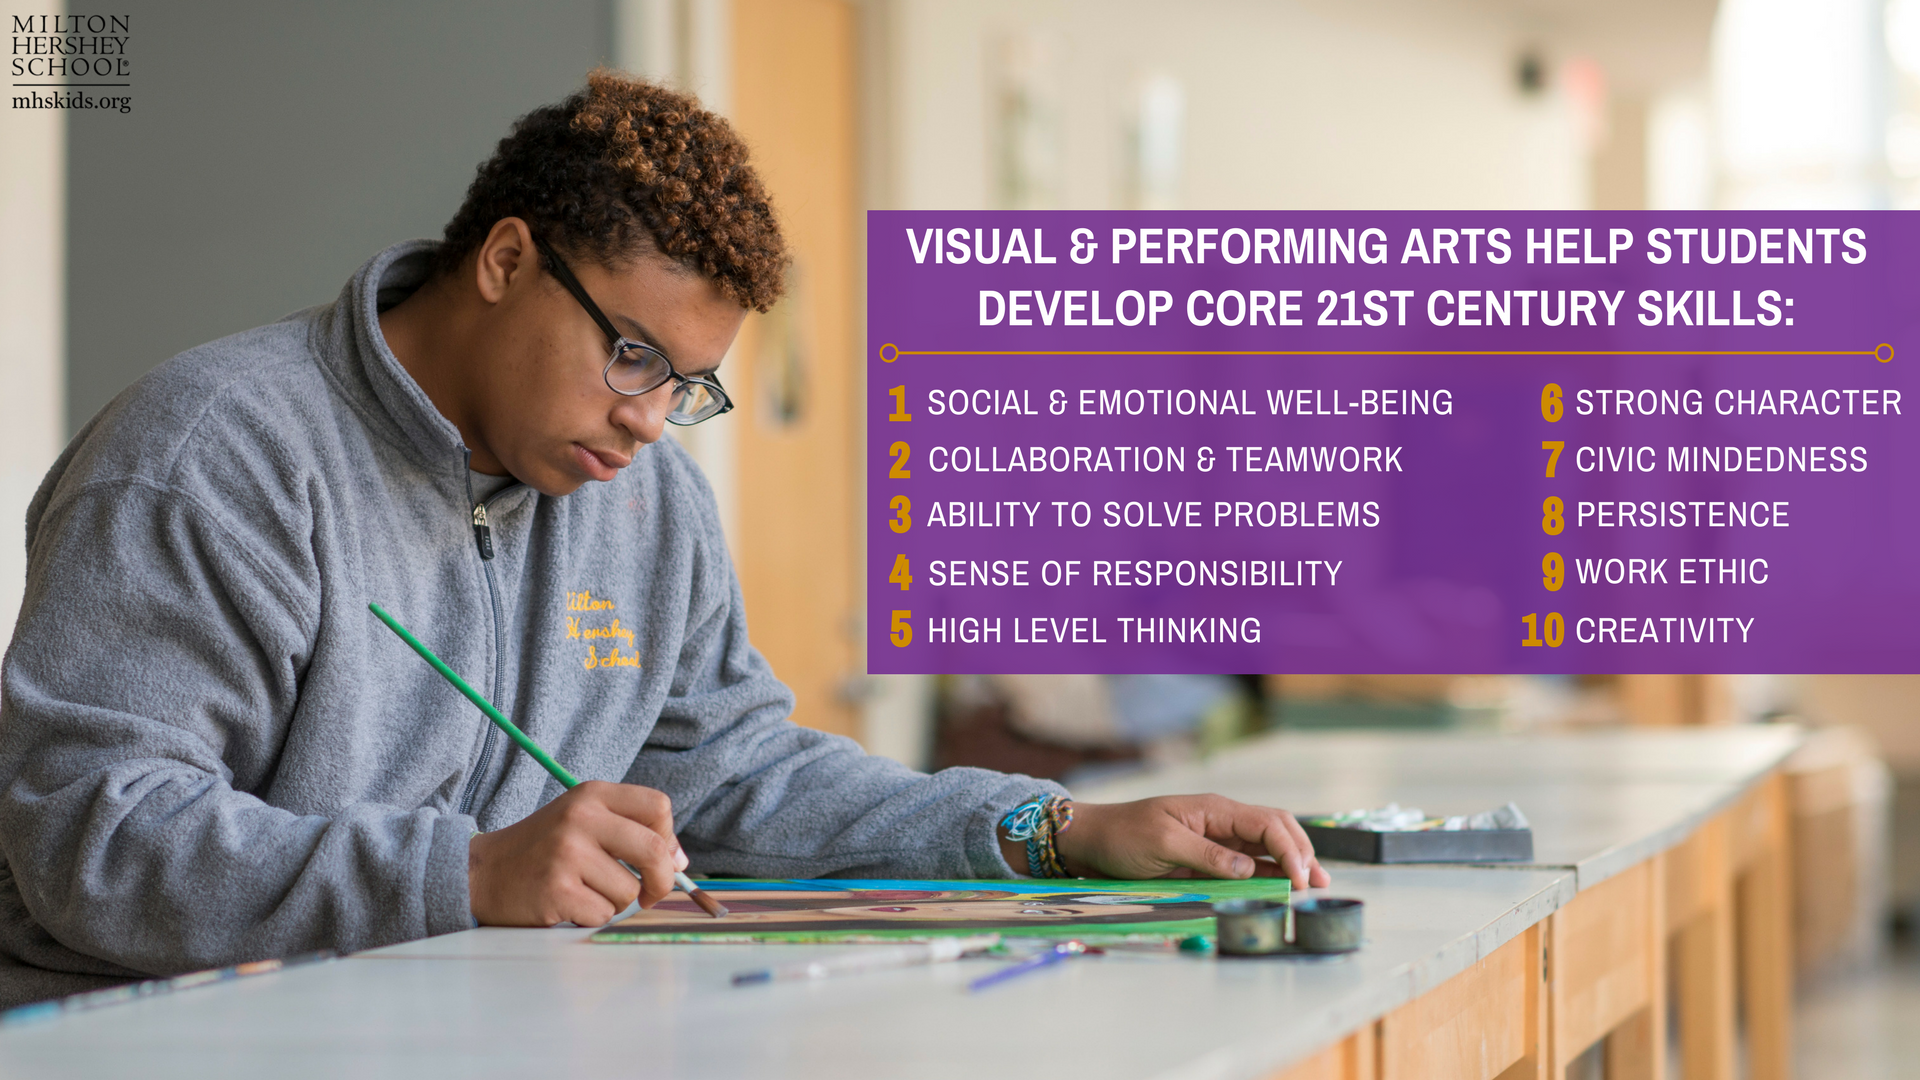 Visual and performing arts help prepare students for the 21st century world